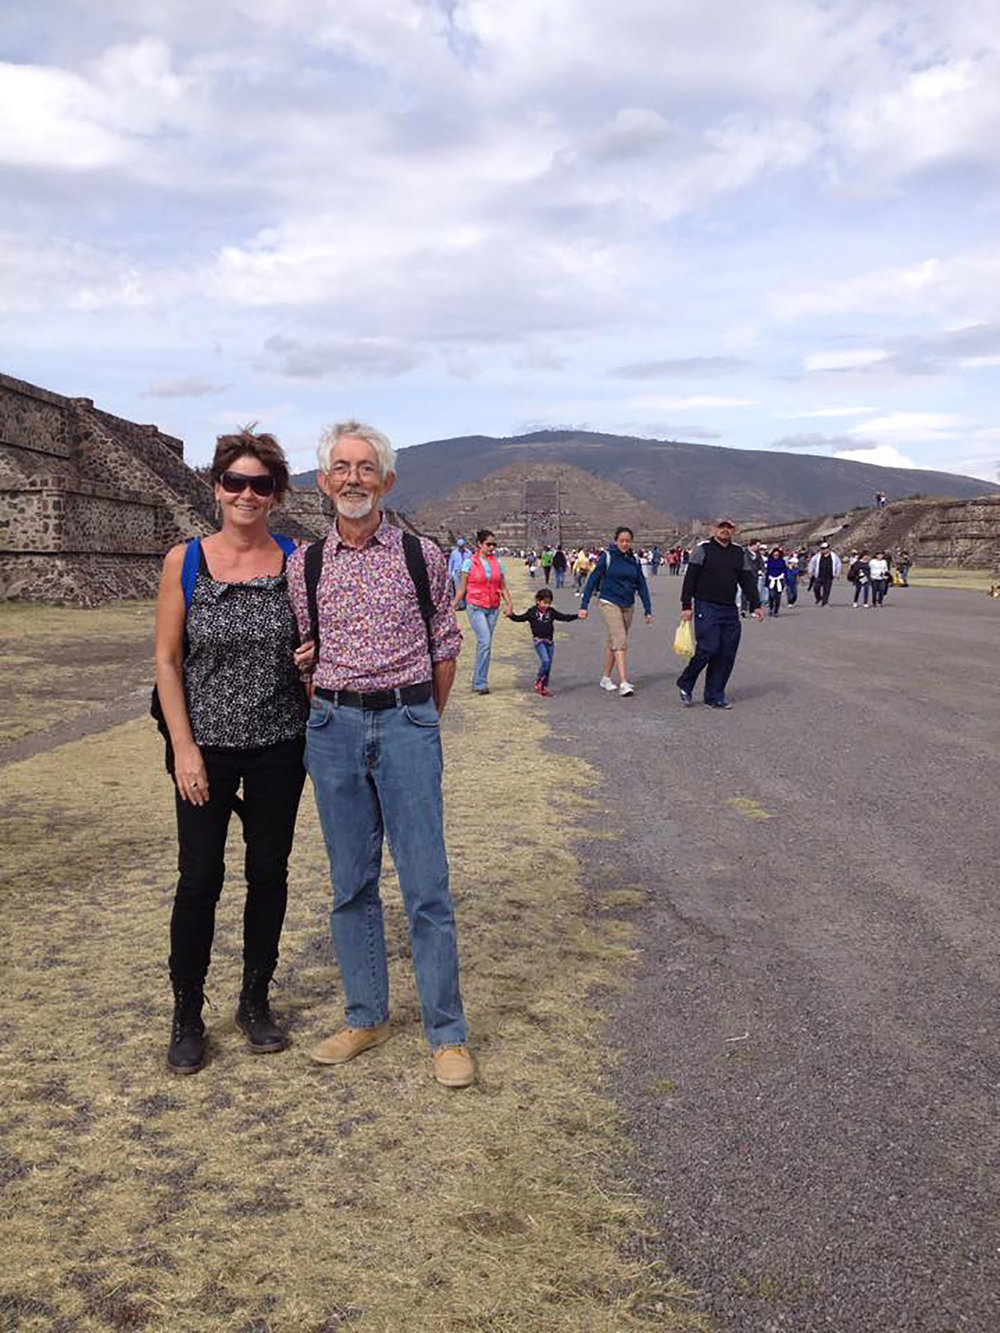 With my husband on the Avenue of the Dead (2014). The Pyramid of the Moon behind us, at the backdrop of the 'Fat Hill'.